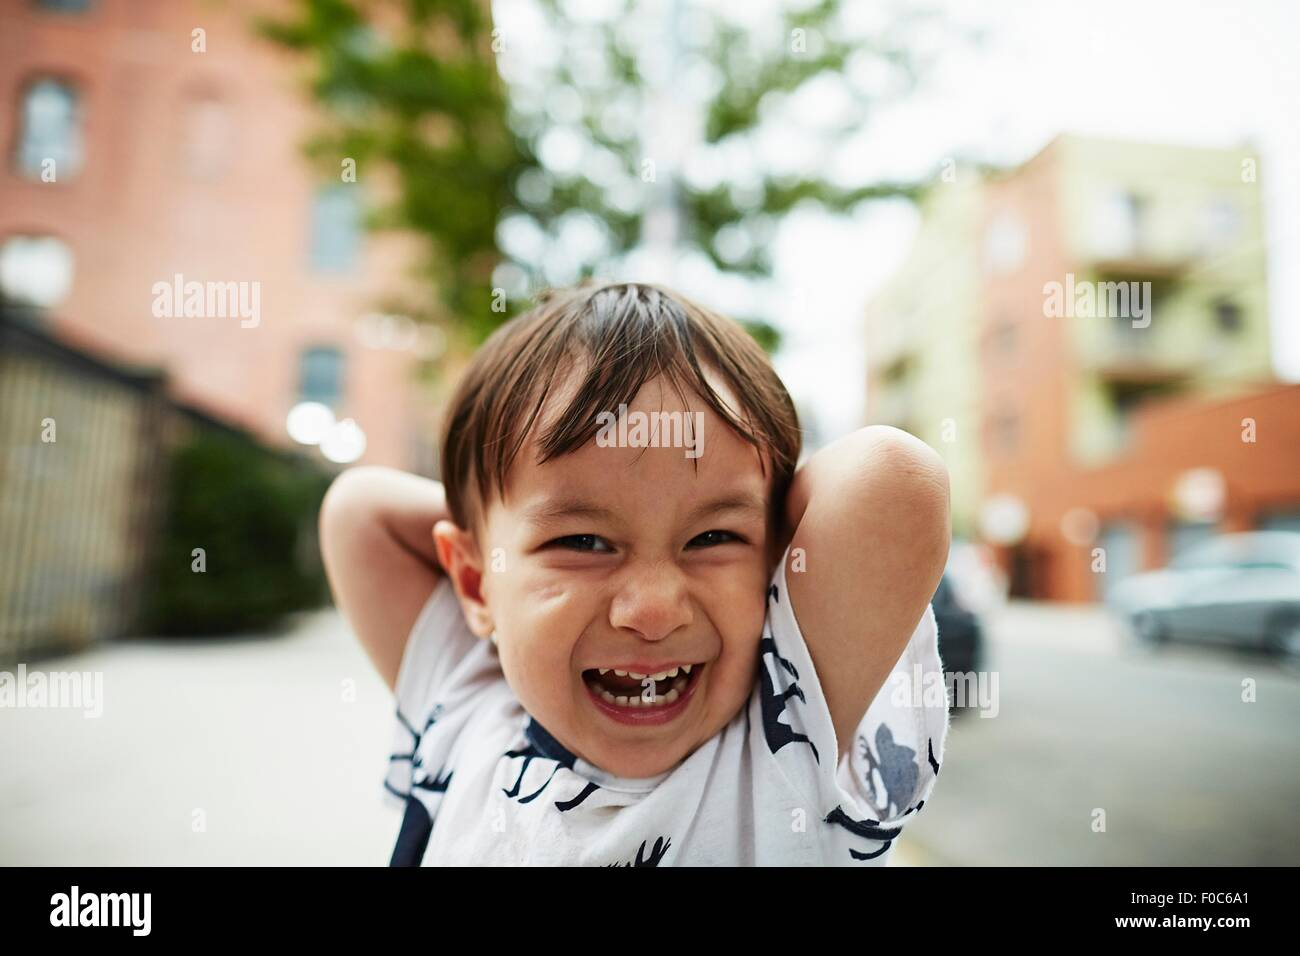 Portrait of laughing boy with his hands behind his head - Stock Image